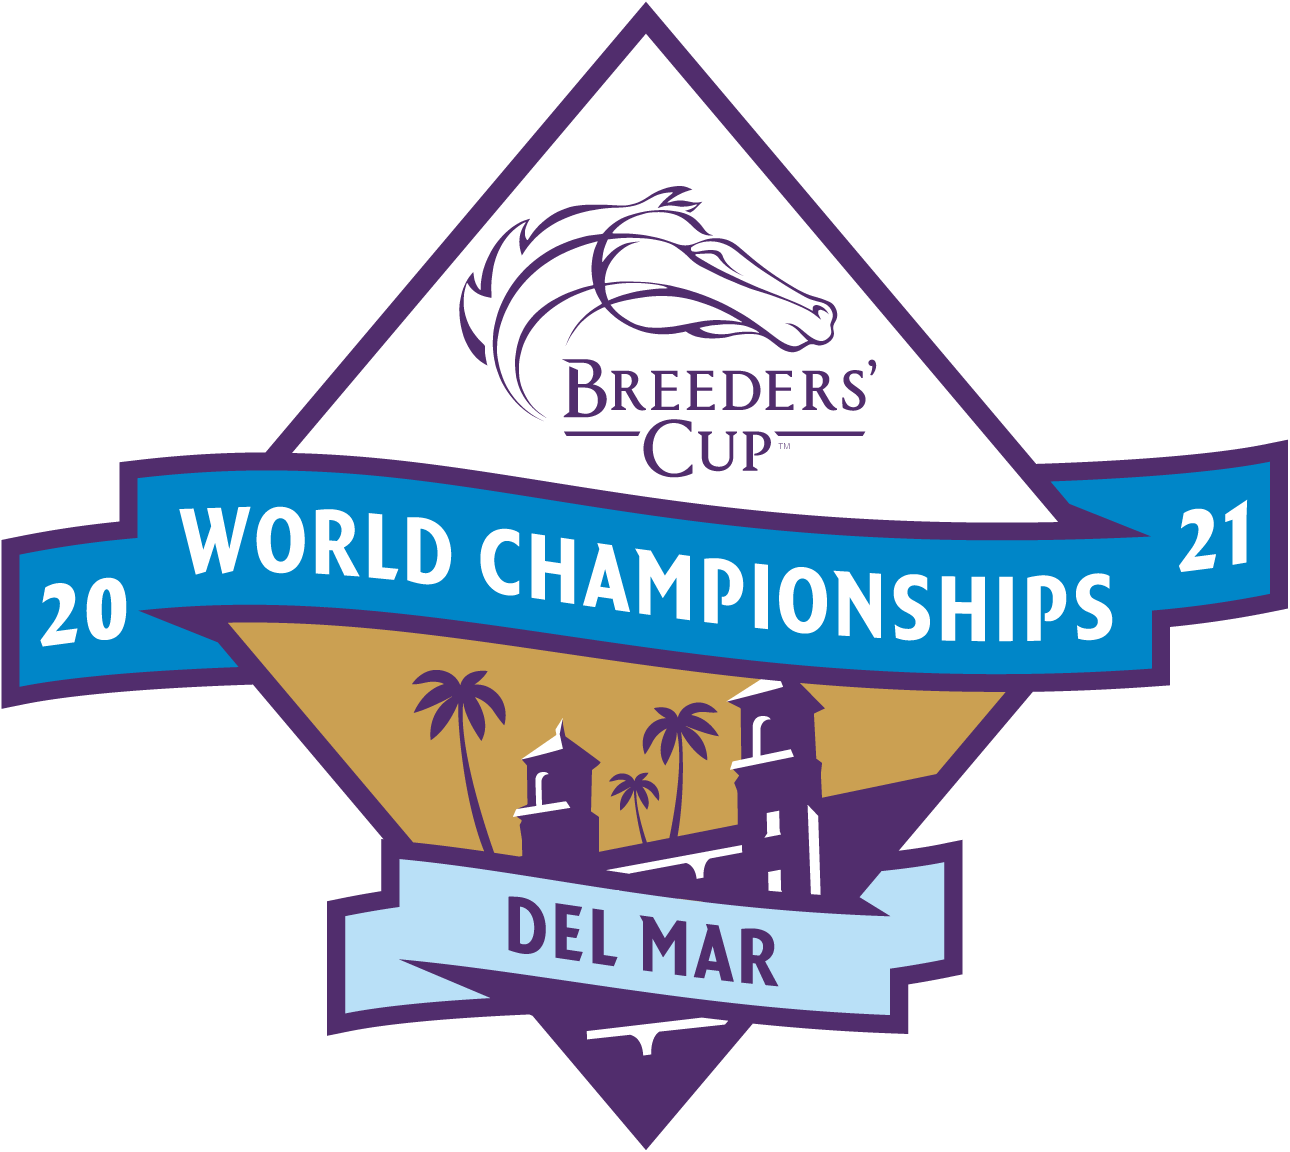 Breeders' Cup Reveals Official Logo for 2021 Breeders' Cup World Championships